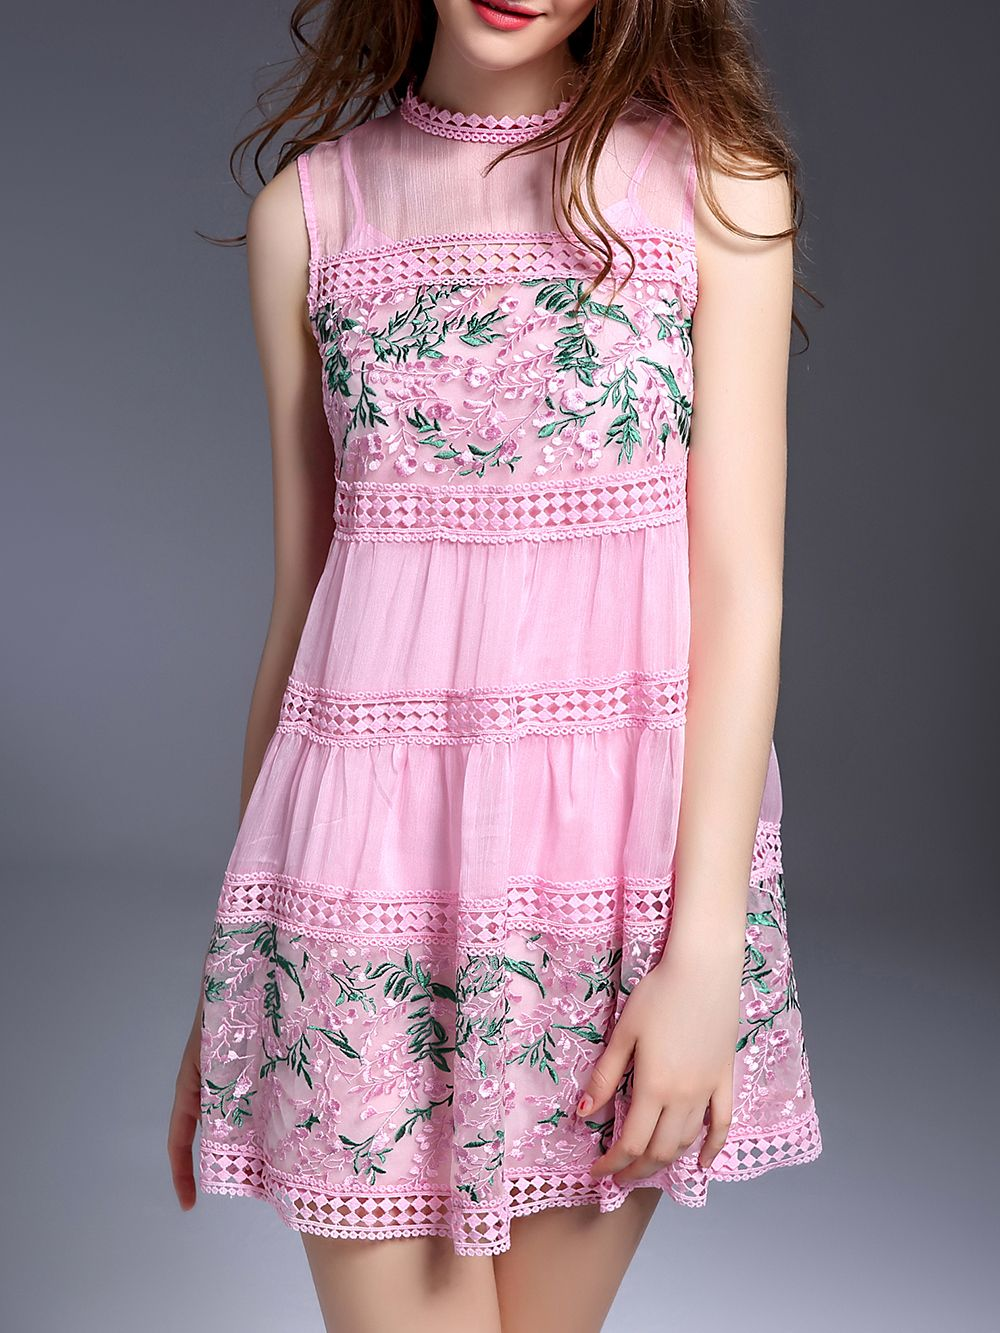 ¡Cómpralo ya!. Pink Organza Embroidered Hollow Shift Dress. Pink Collar Sleeveless Polyester Shift Short Embroidery Fabric has no stretch Summer Vintage Day Dresses. , vestidoinformal, casual, informales, informal, day, kleidcasual, vestidoinformal, robeinformelle, vestitoinformale, día. Vestido informal  de mujer color rosa de SheIn.